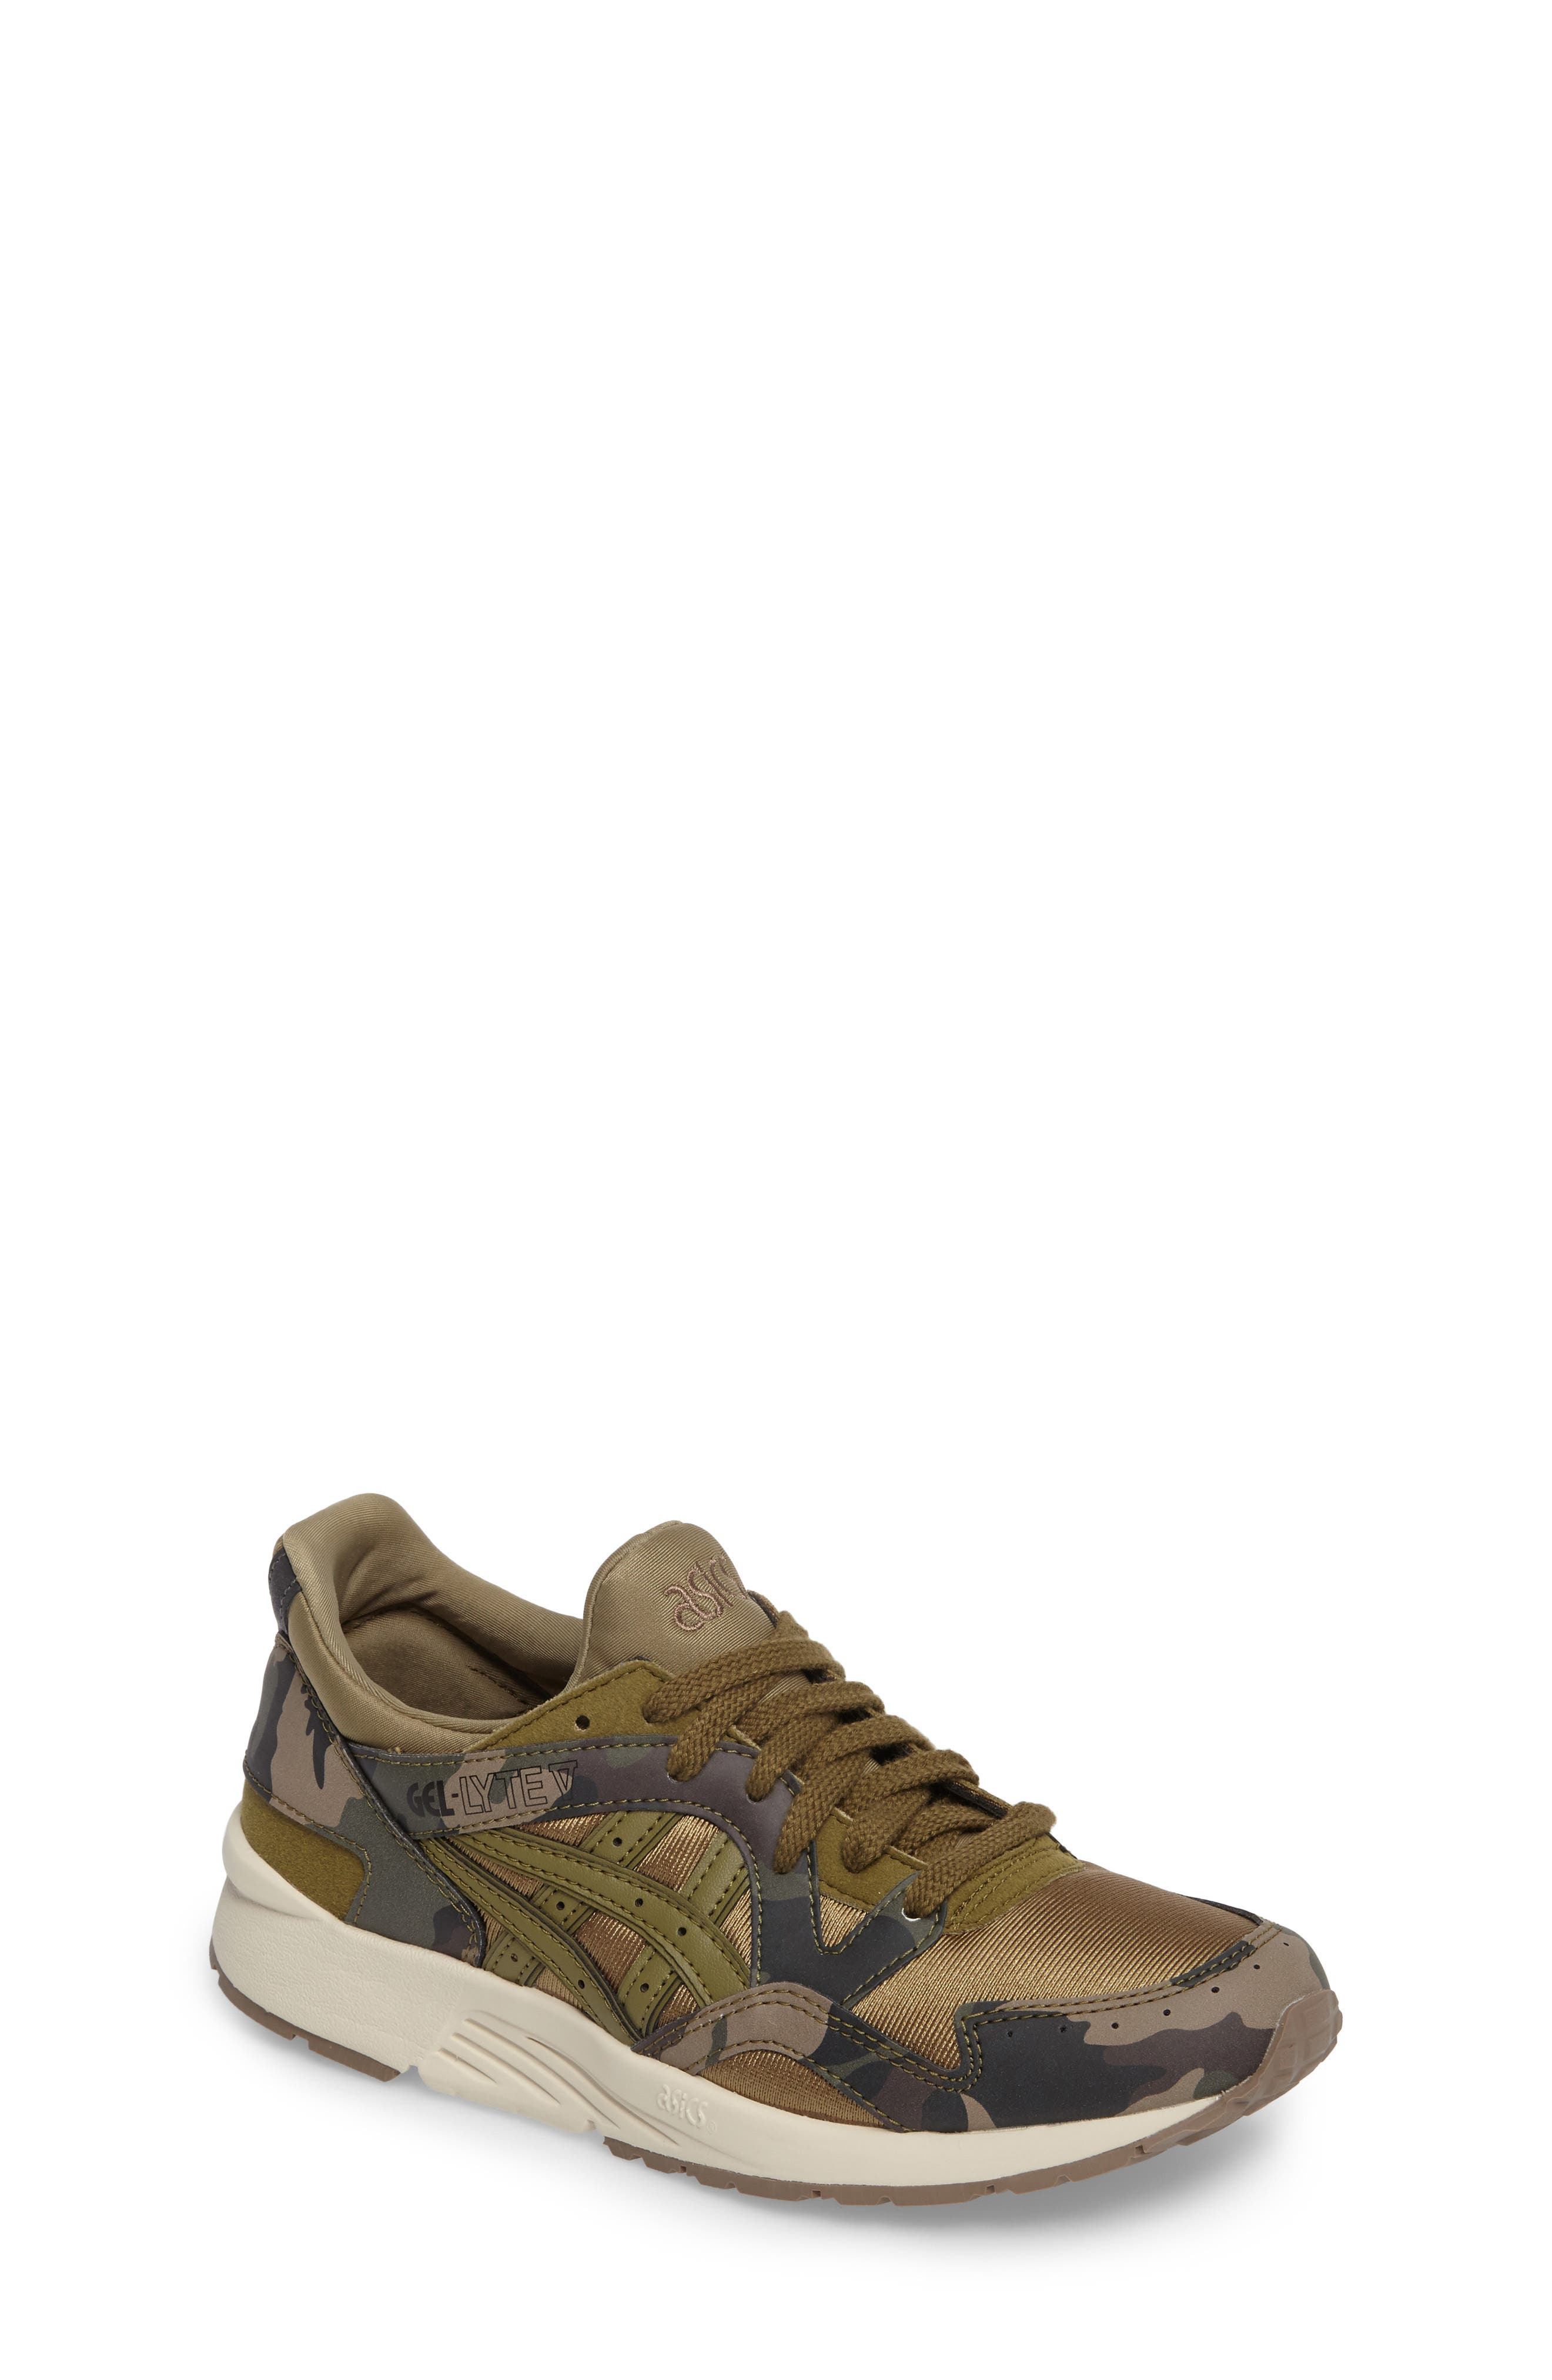 GEL-LYTE<sup>®</sup> V GS Sneaker,                         Main,                         color, Martini Olive/ Martini Olive